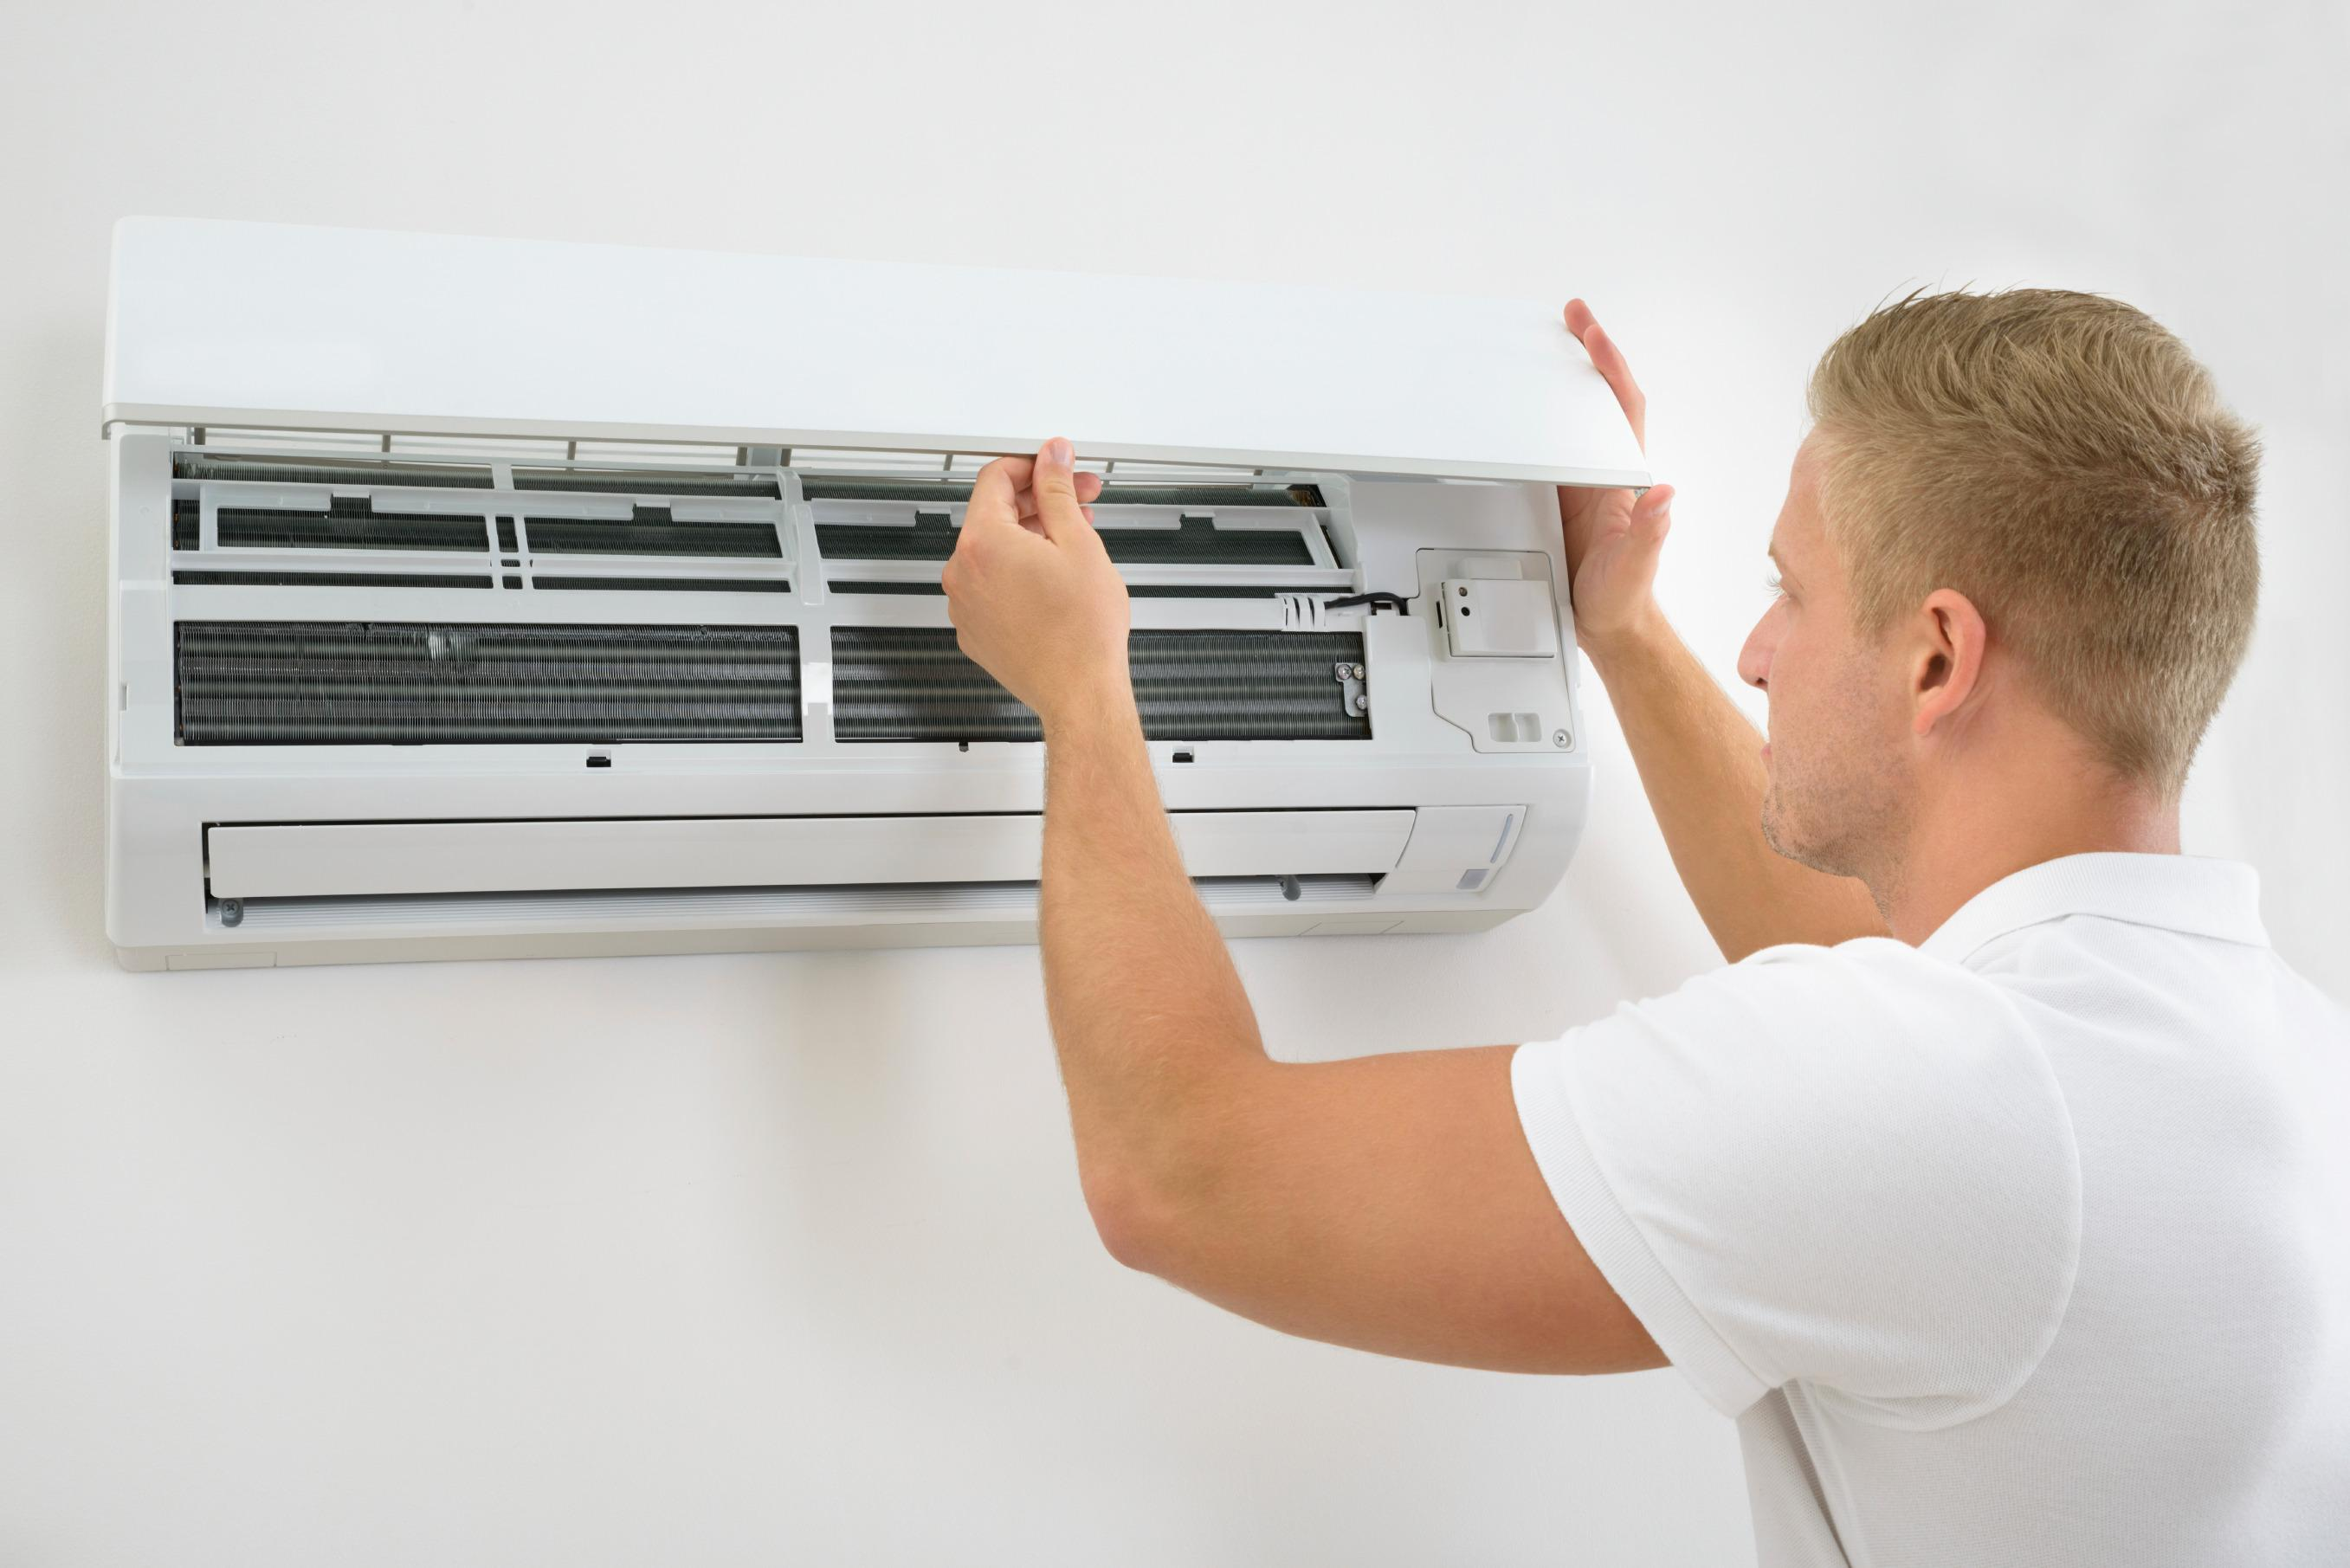 INSTALLATIONS  Every home and business is different, which means upgrading or installing a new system requires a knowledgeable team that can recommend one that works for you.  Our friendly, certified